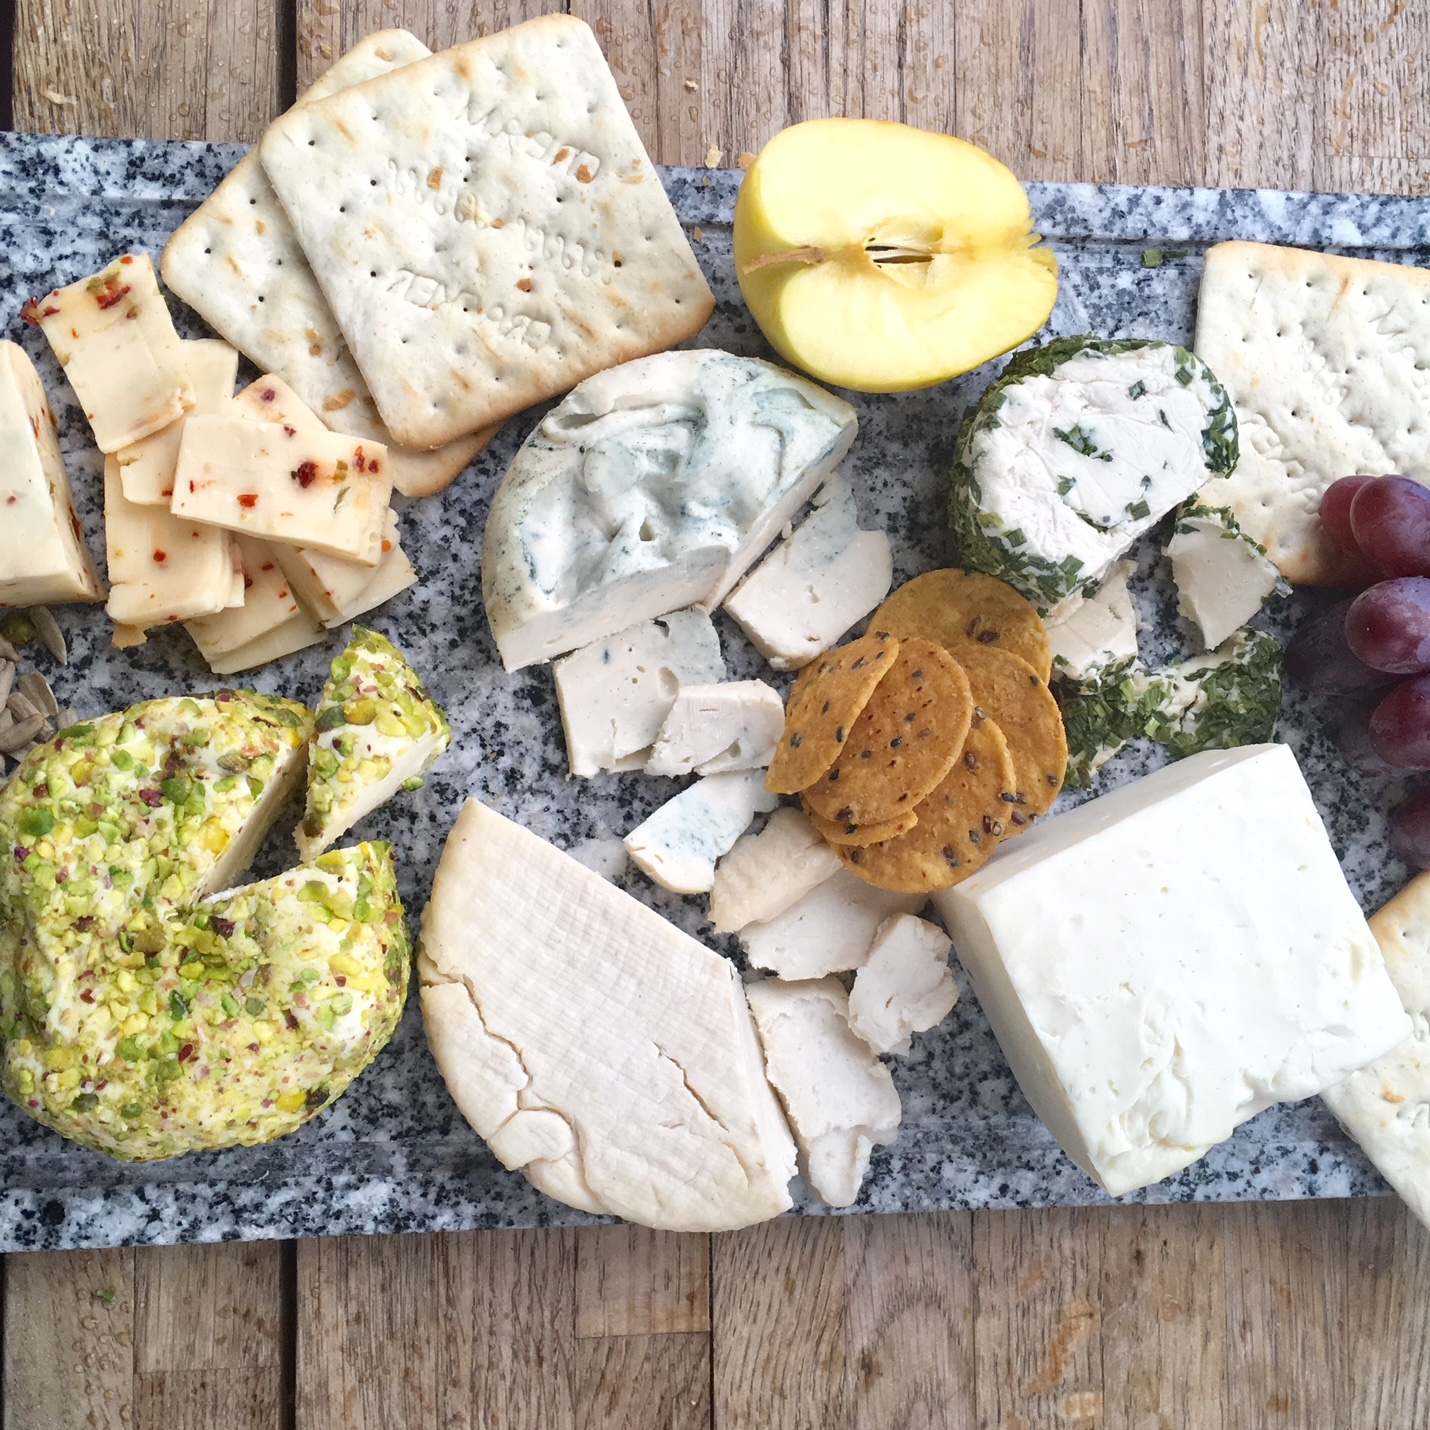 REAL PLANT-BASED CHEESE - Artisan Crafted